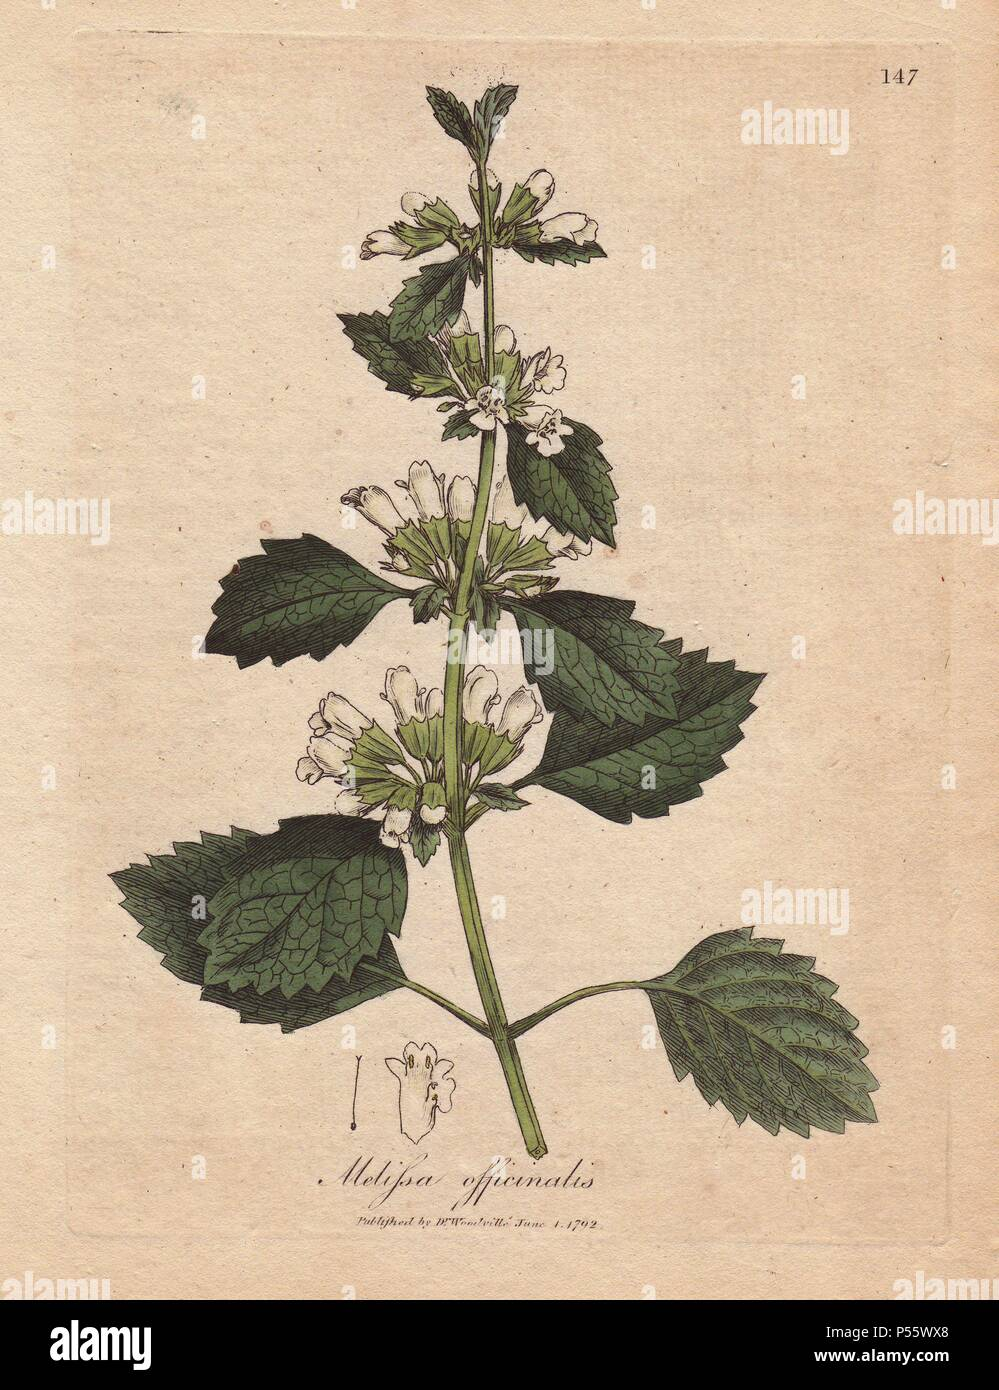 Lemon balm, Melissa officinalis. Handcolored copperplate engraving from a botanical illustration by James Sowerby from William Woodville and Sir William Jackson Hooker's 'Medical Botany' 1832. The tireless Sowerby (1757-1822) drew over 2,500 plants for Smith's mammoth 'English Botany' (1790-1814) and 440 mushrooms for 'Coloured Figures of English Fungi ' (1797) among many other works. - Stock Image